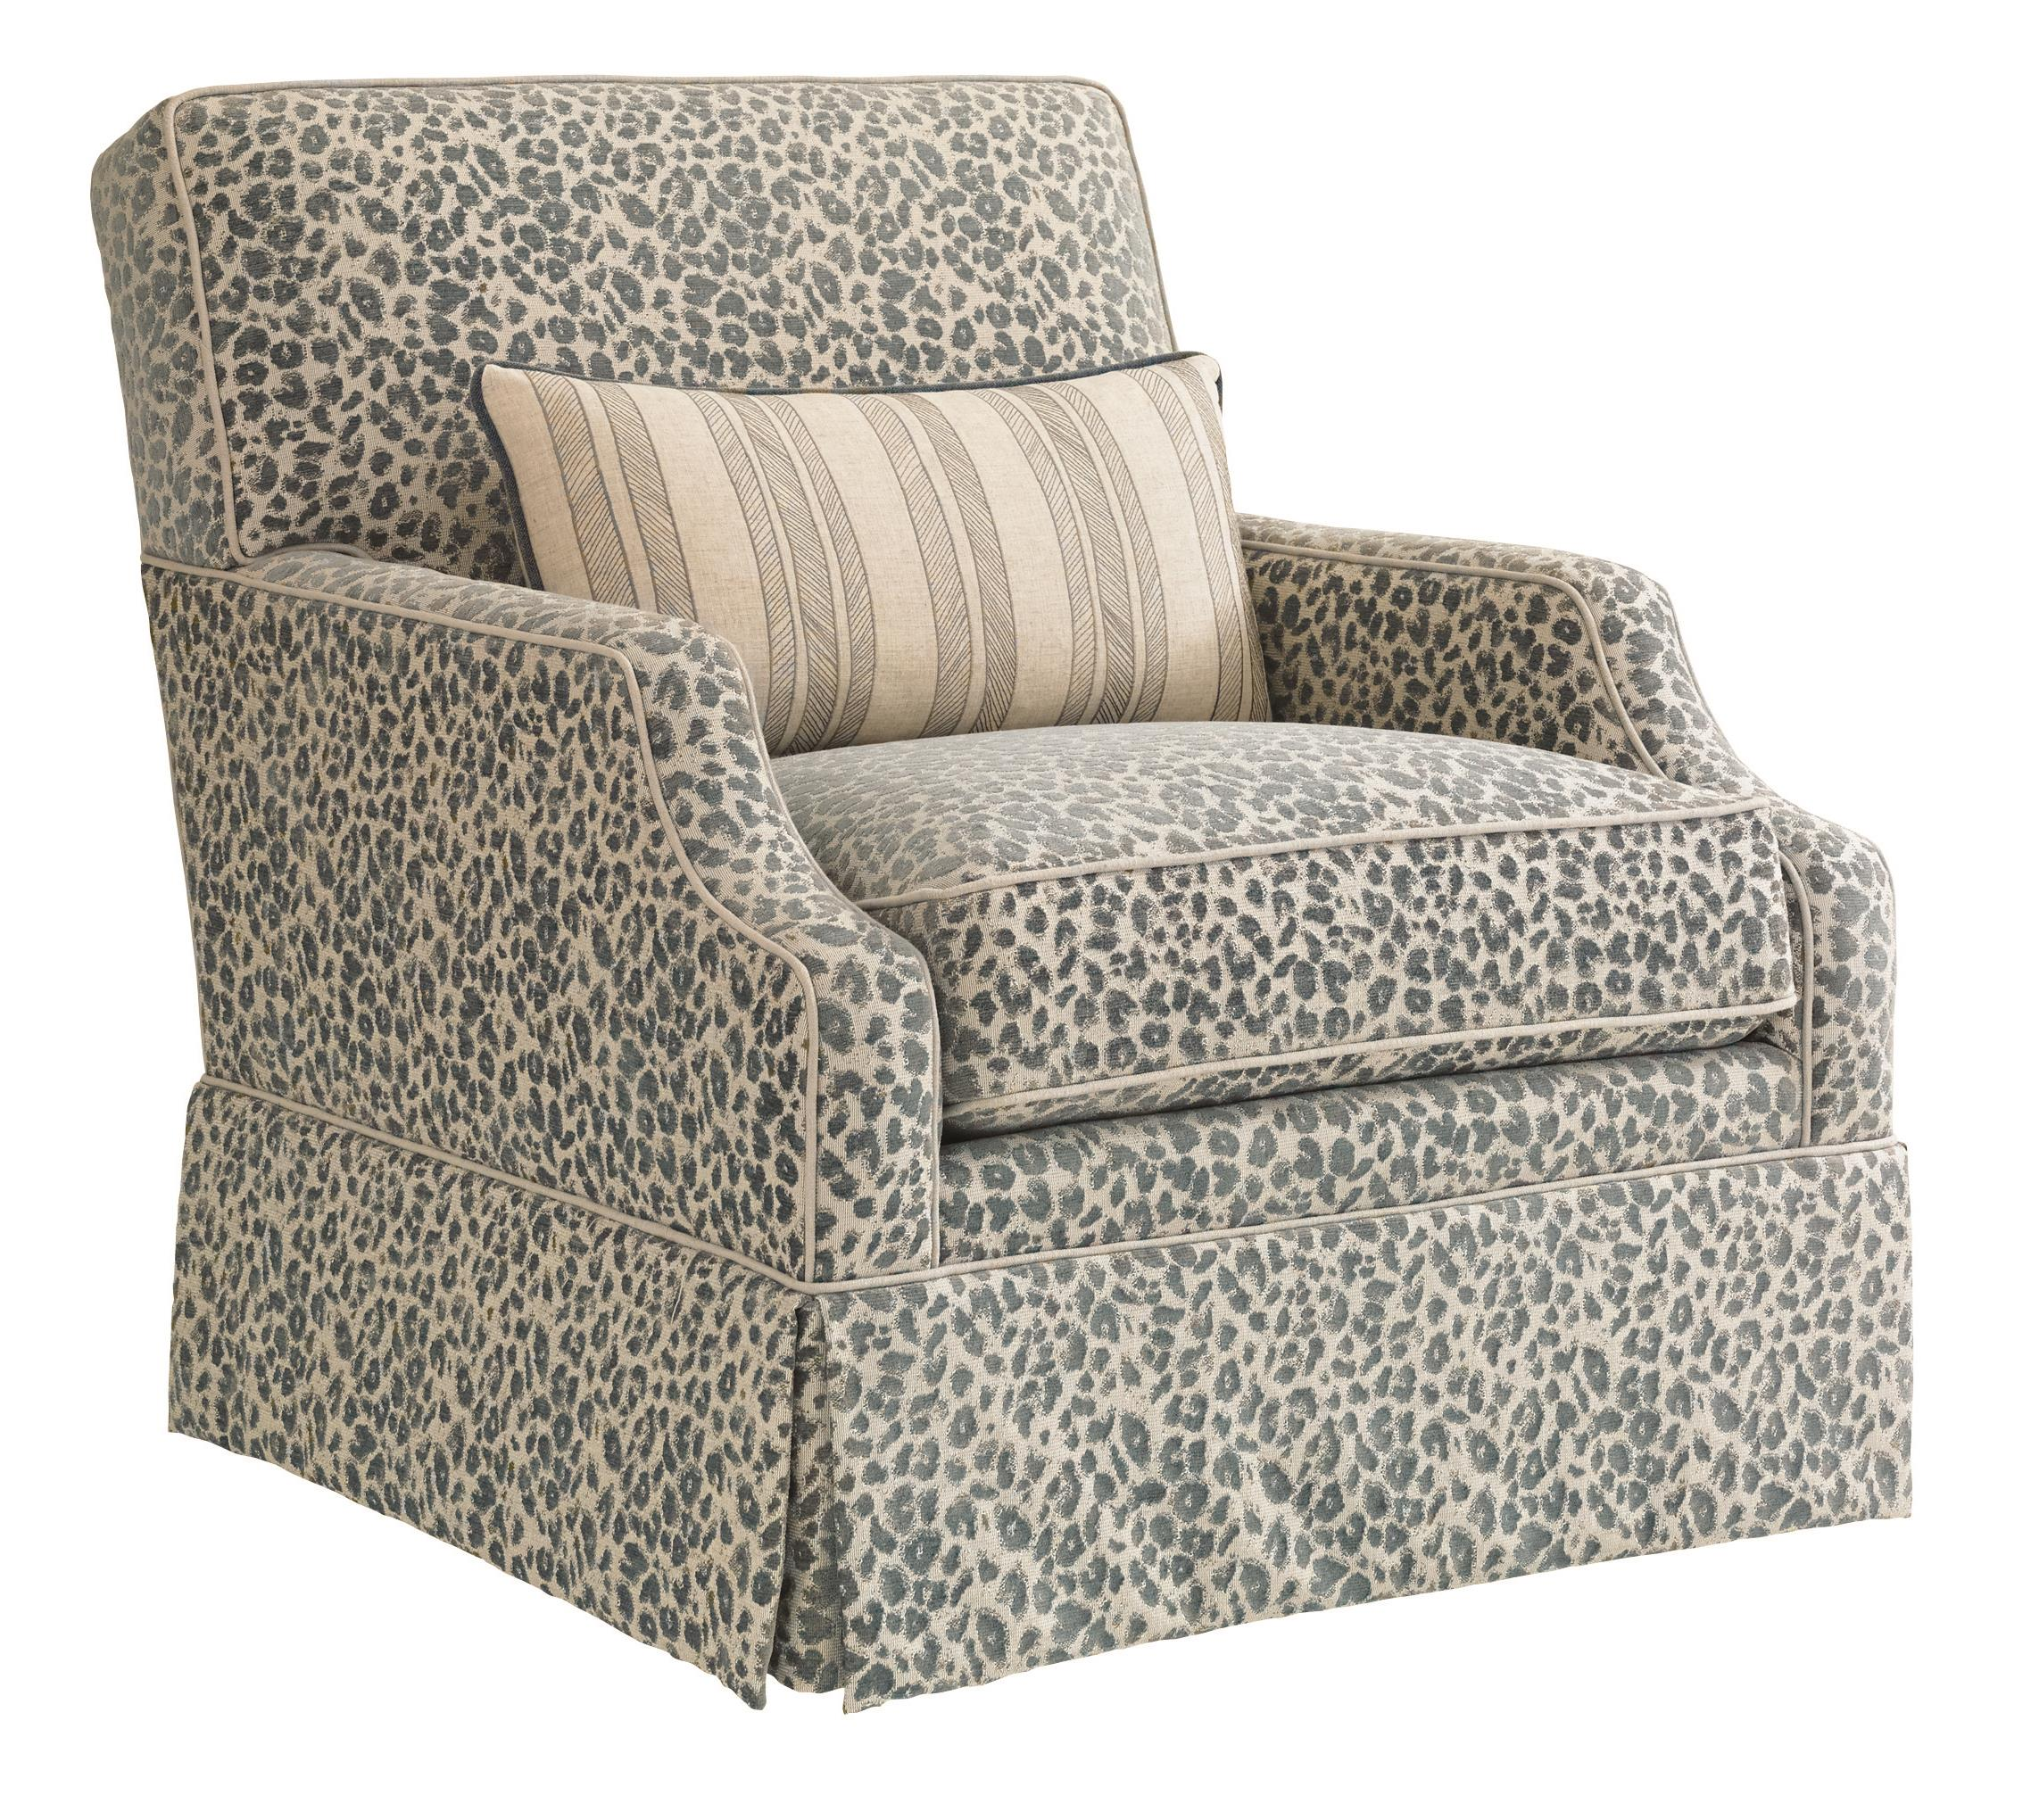 Bali Hai Courtney Swivel Chair by Tommy Bahama Home at Baer's Furniture